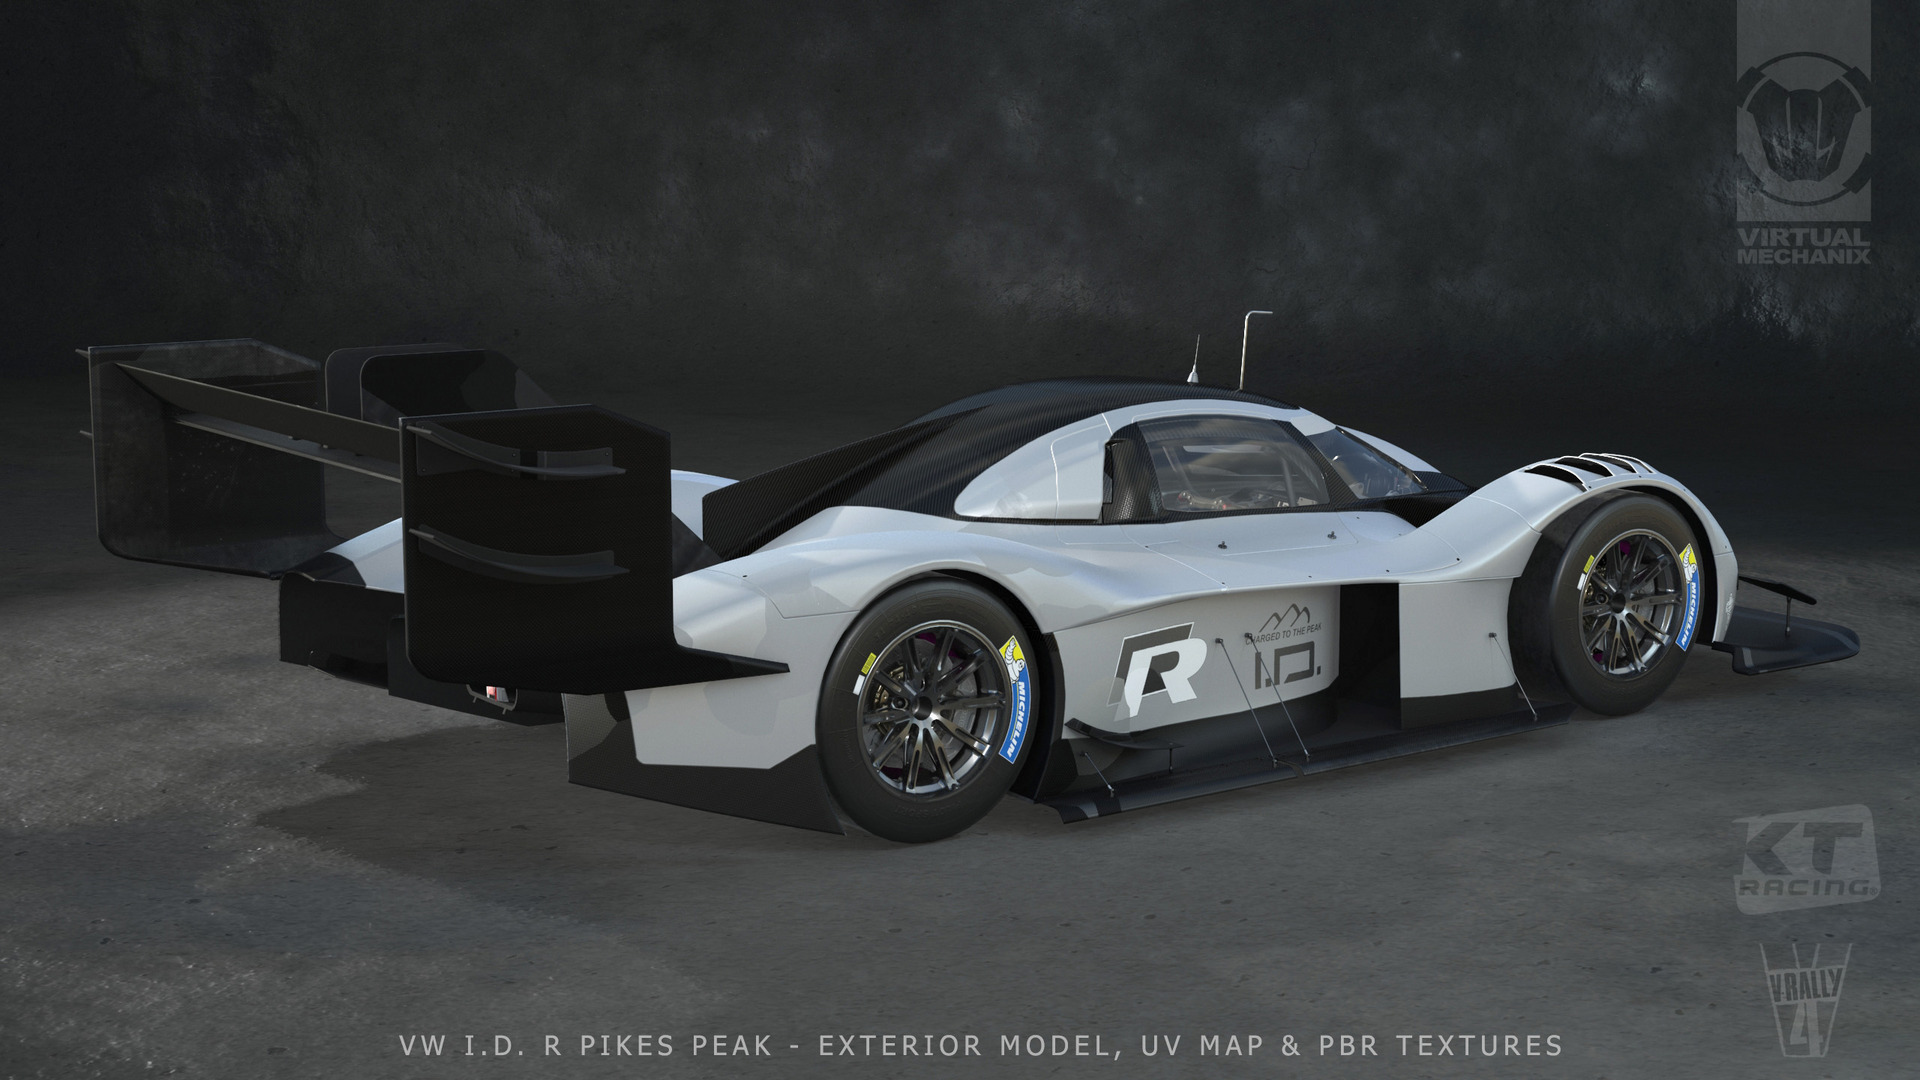 VR4 VW ID R Pikes Peaks Exterior 3D